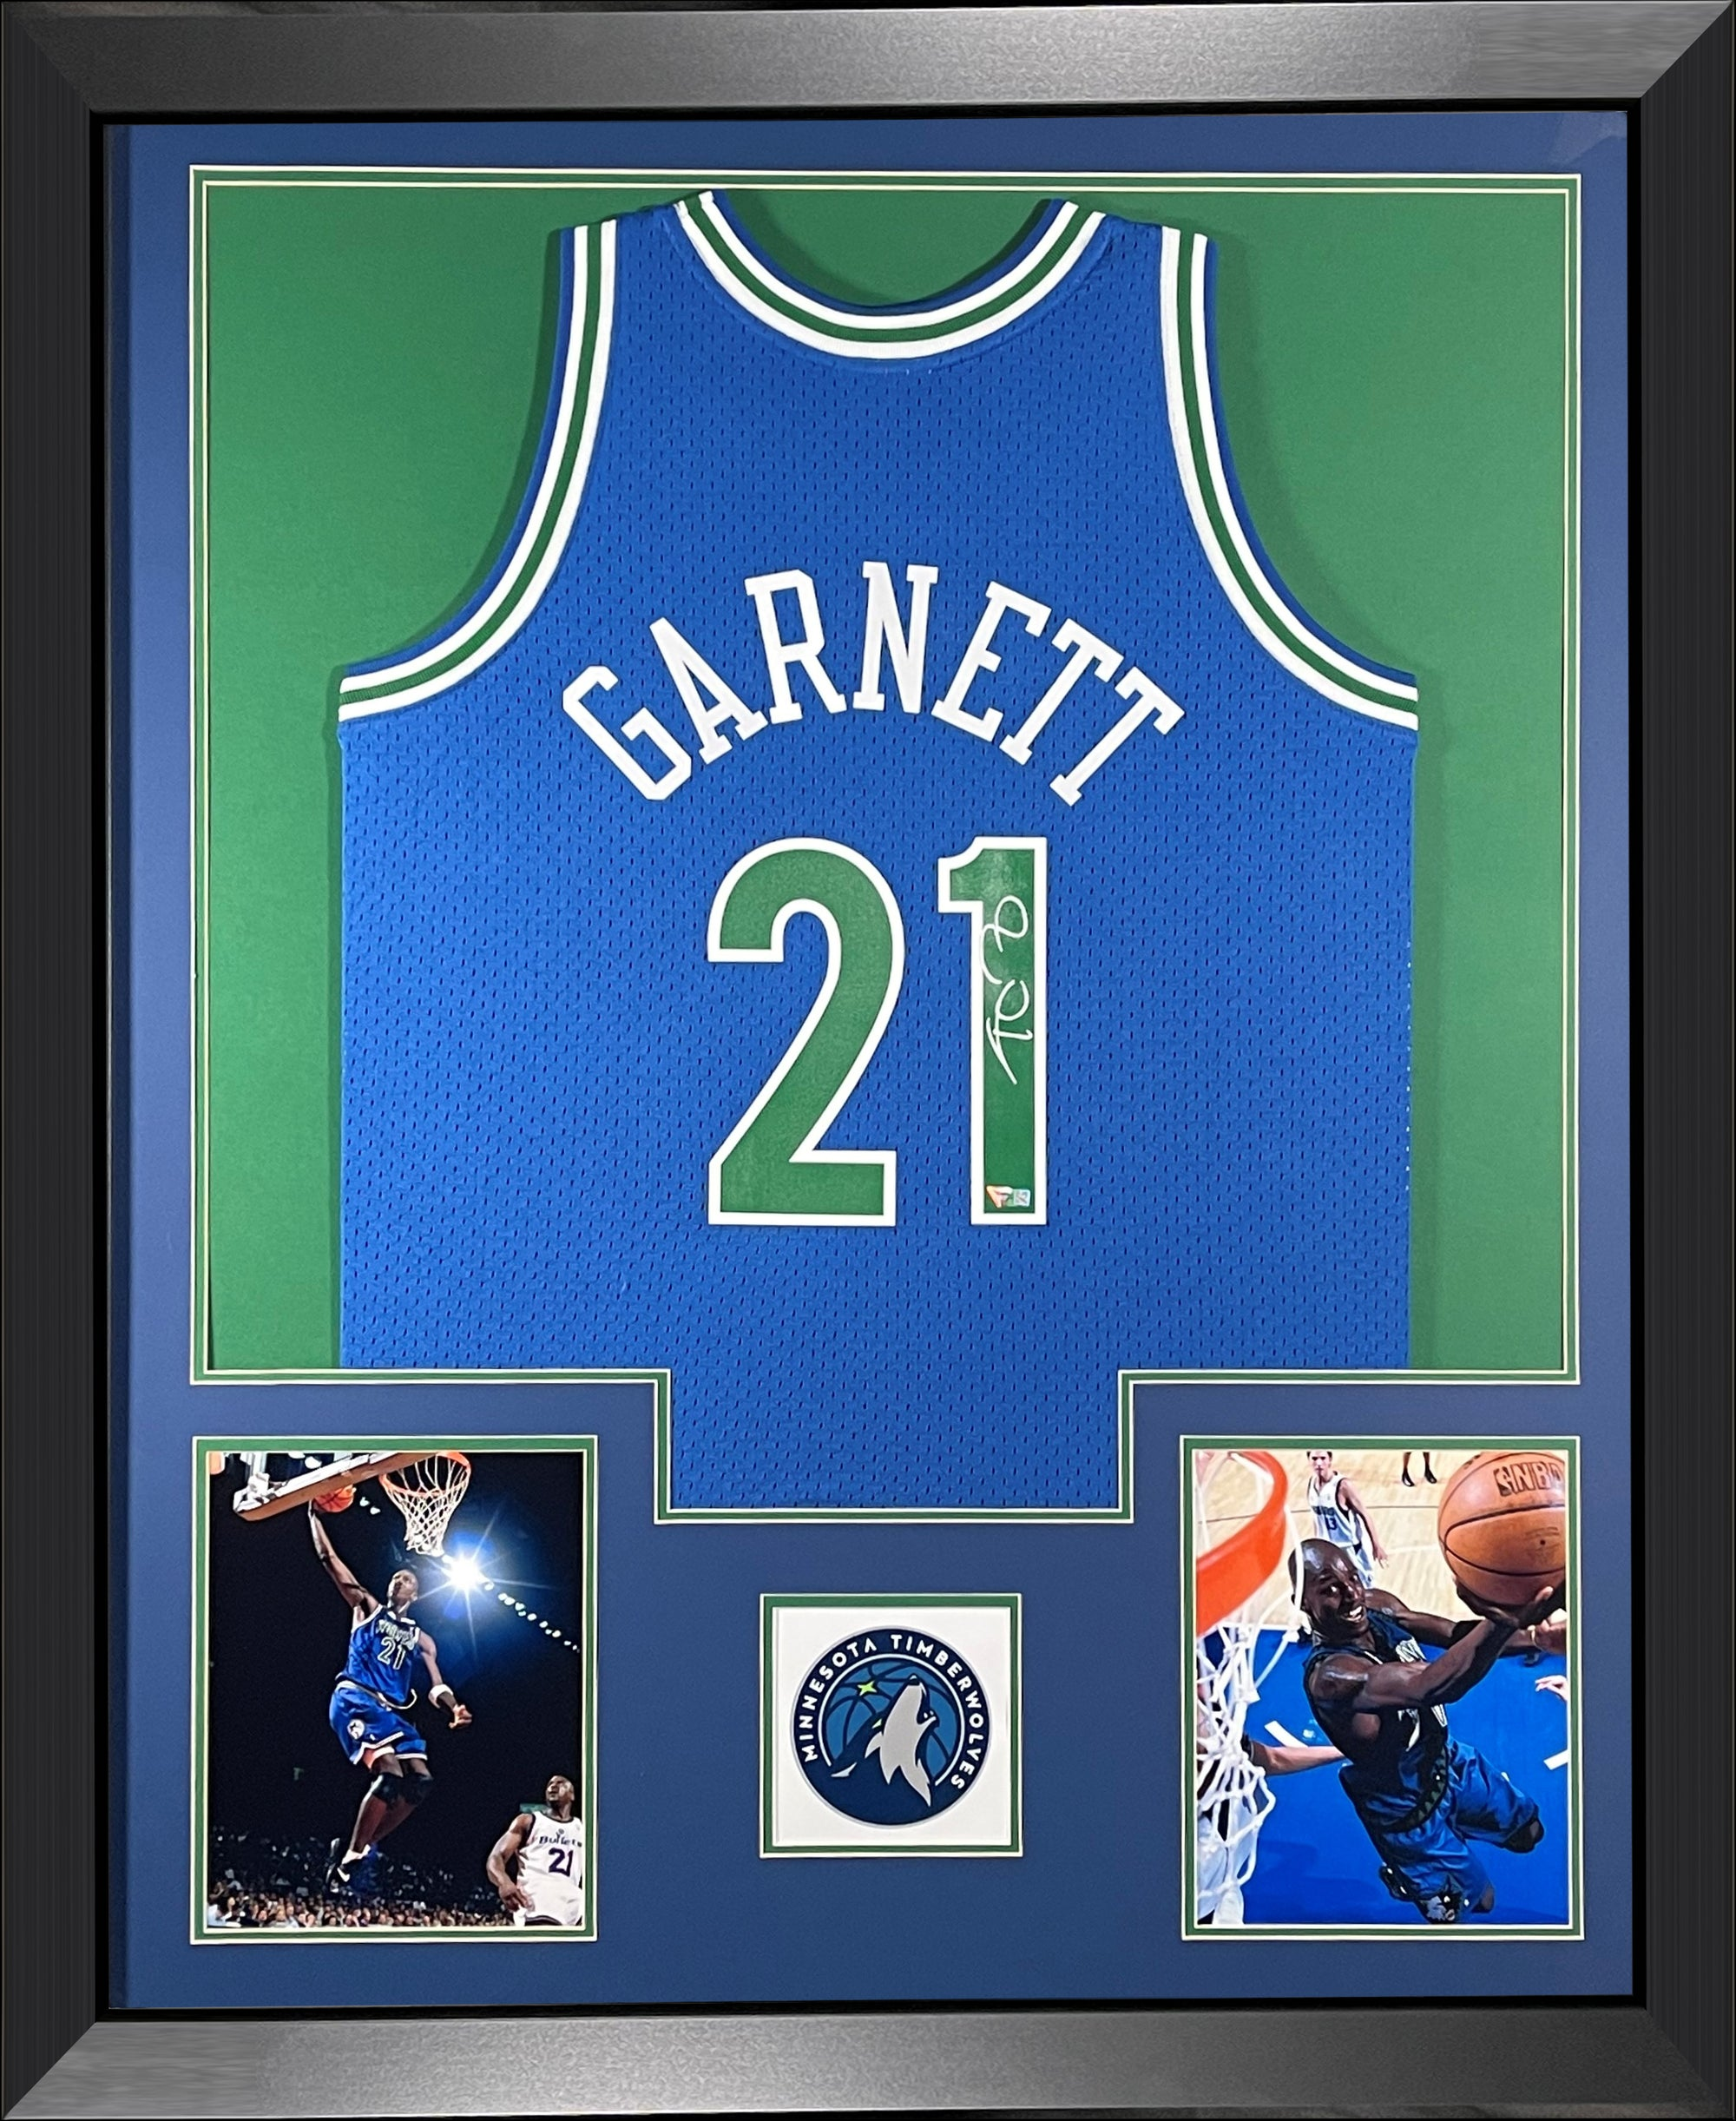 Kevin Garnett Autographed Minnesota Timberwolves 1995-1996 Mitchell and Ness NBA Swingman Signed Basketball Framed Jersey Fanatics Authentic COA-Powers Sports Memorabilia